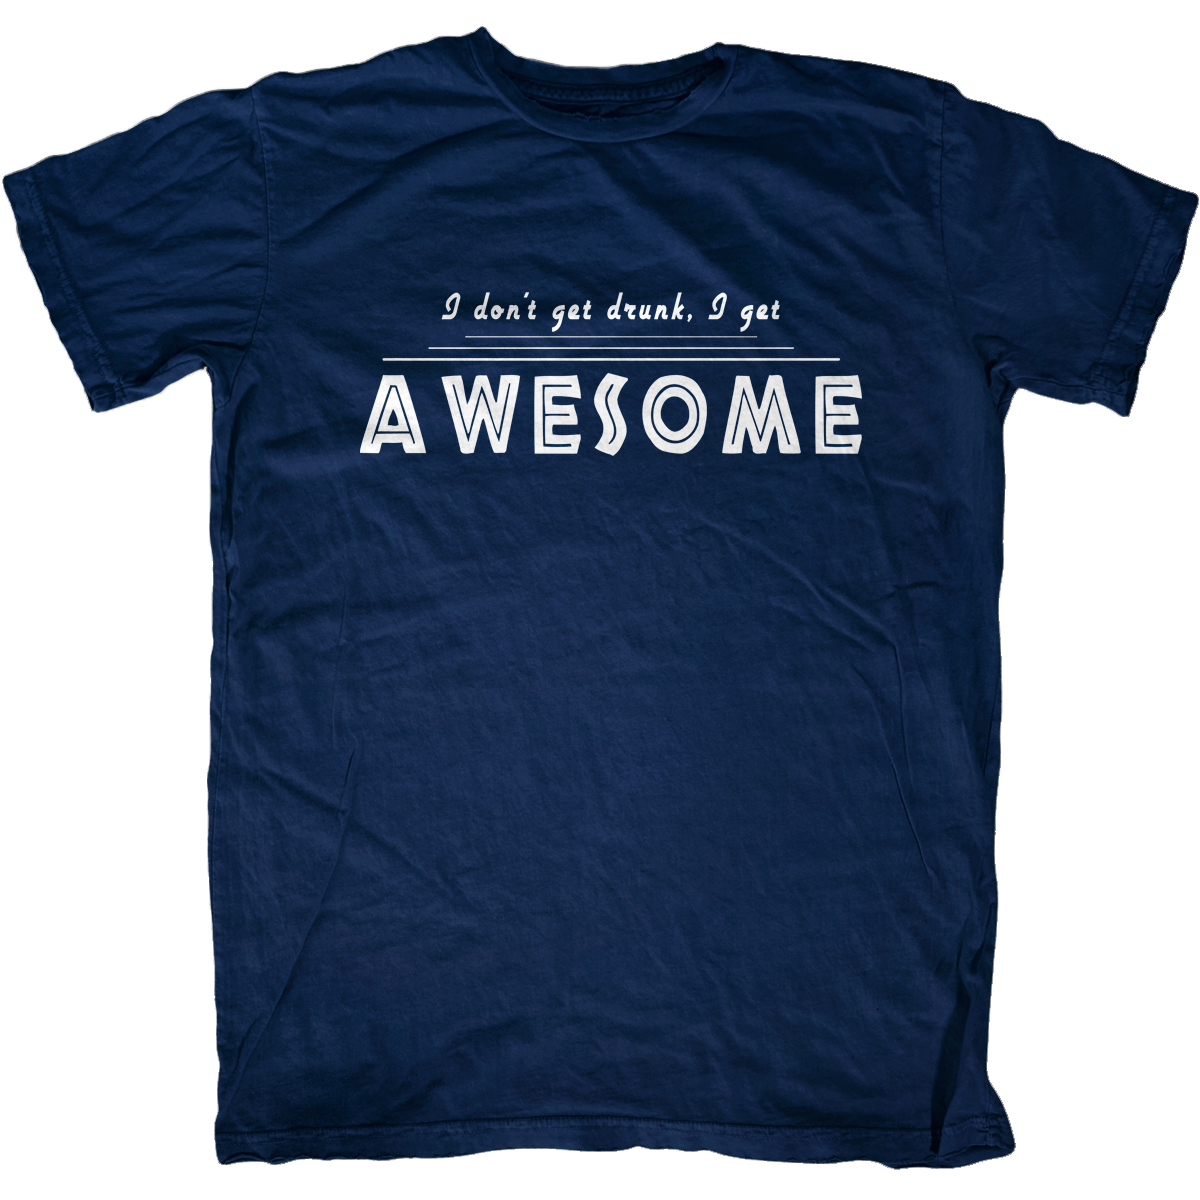 0a647fdfd Not Drunk, Awesome T-Shirt - First Amendment Tees Co. Inc.